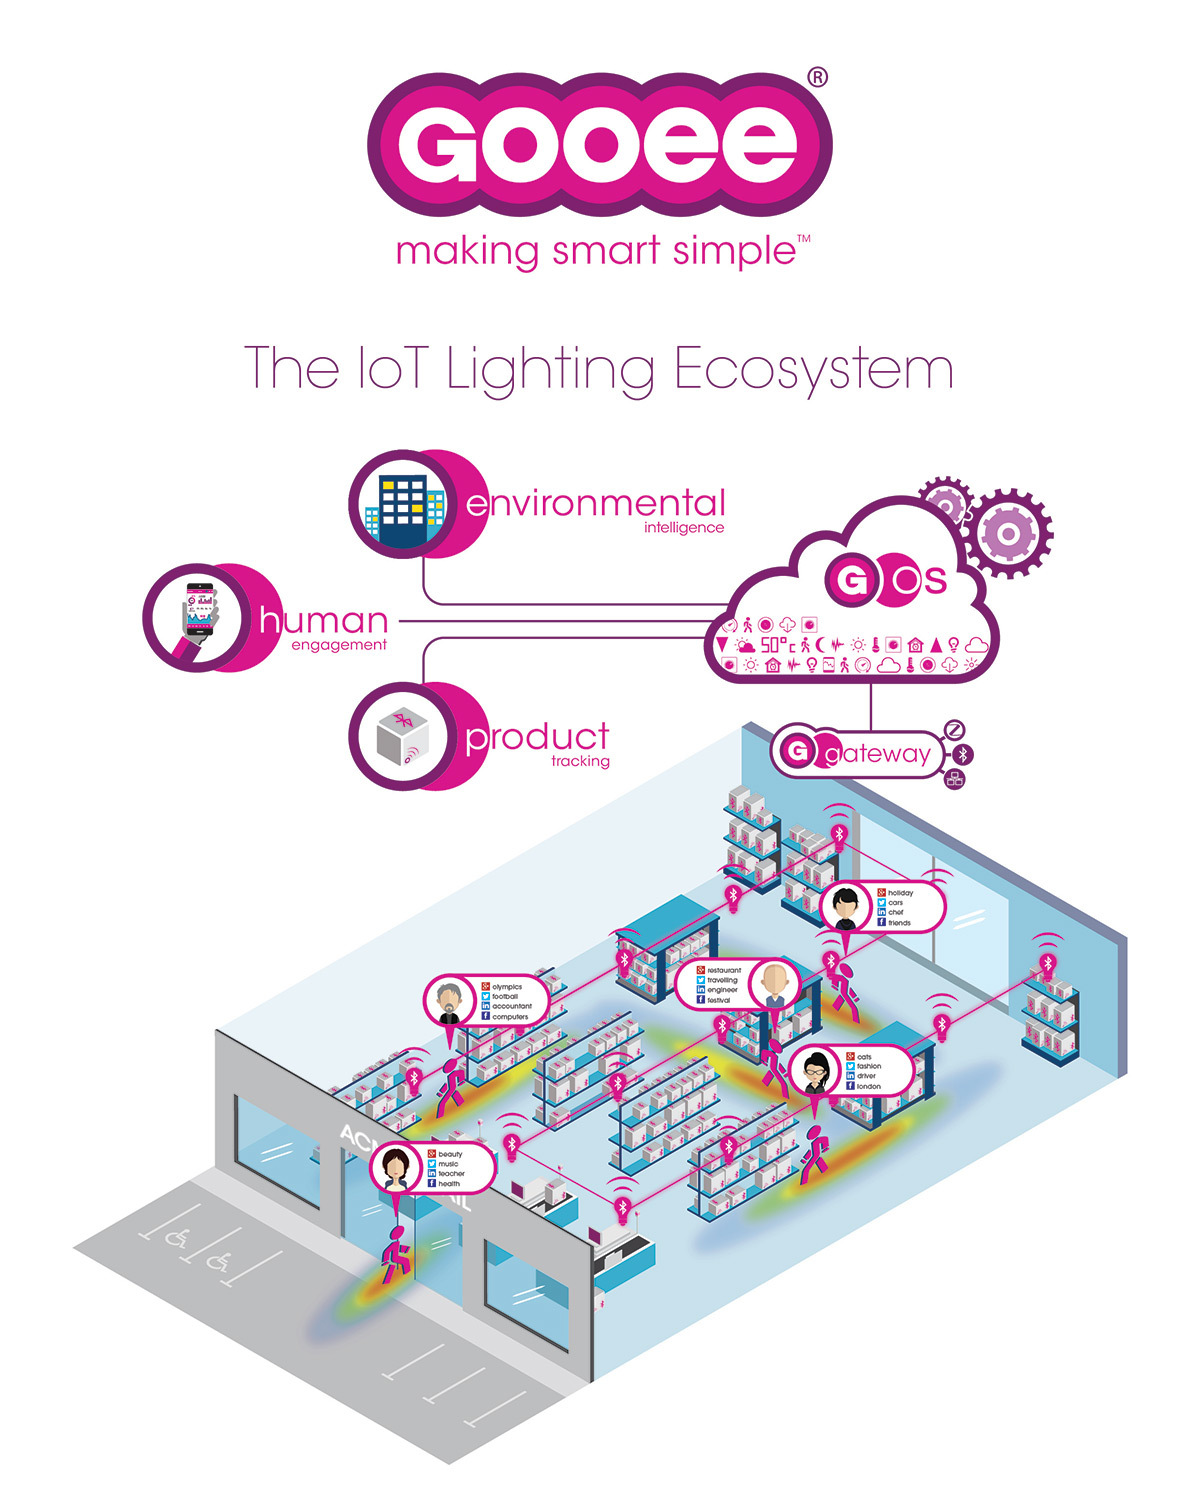 Lauréat exposant - Design Plus, Light + Building 2016 - Photo Gooee Limited, Gooee IoT ecosystem